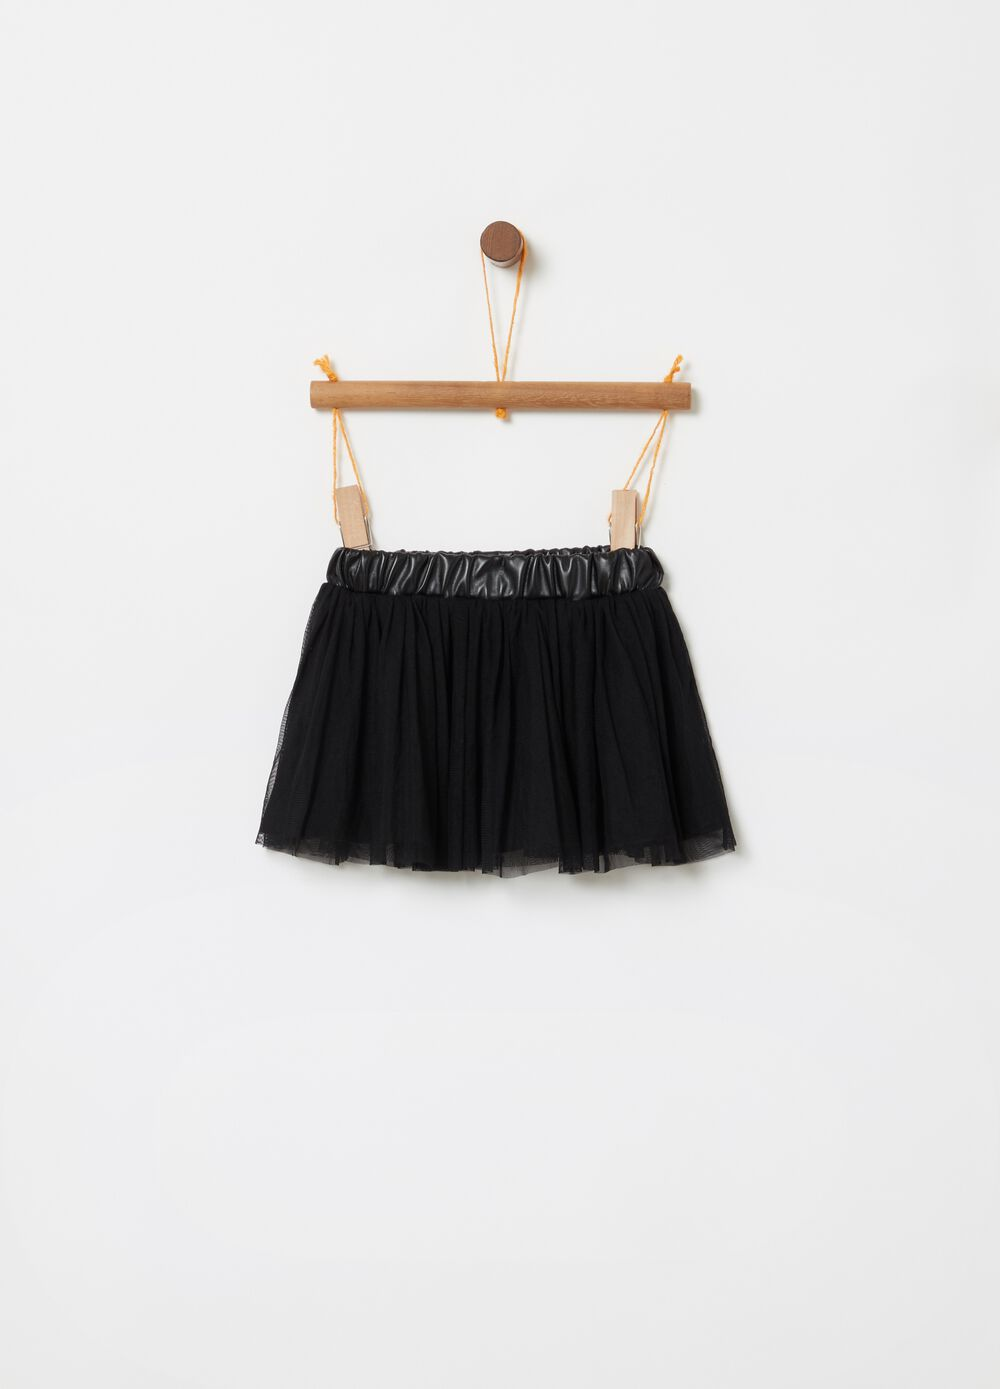 Tulle skirt with elasticated waist